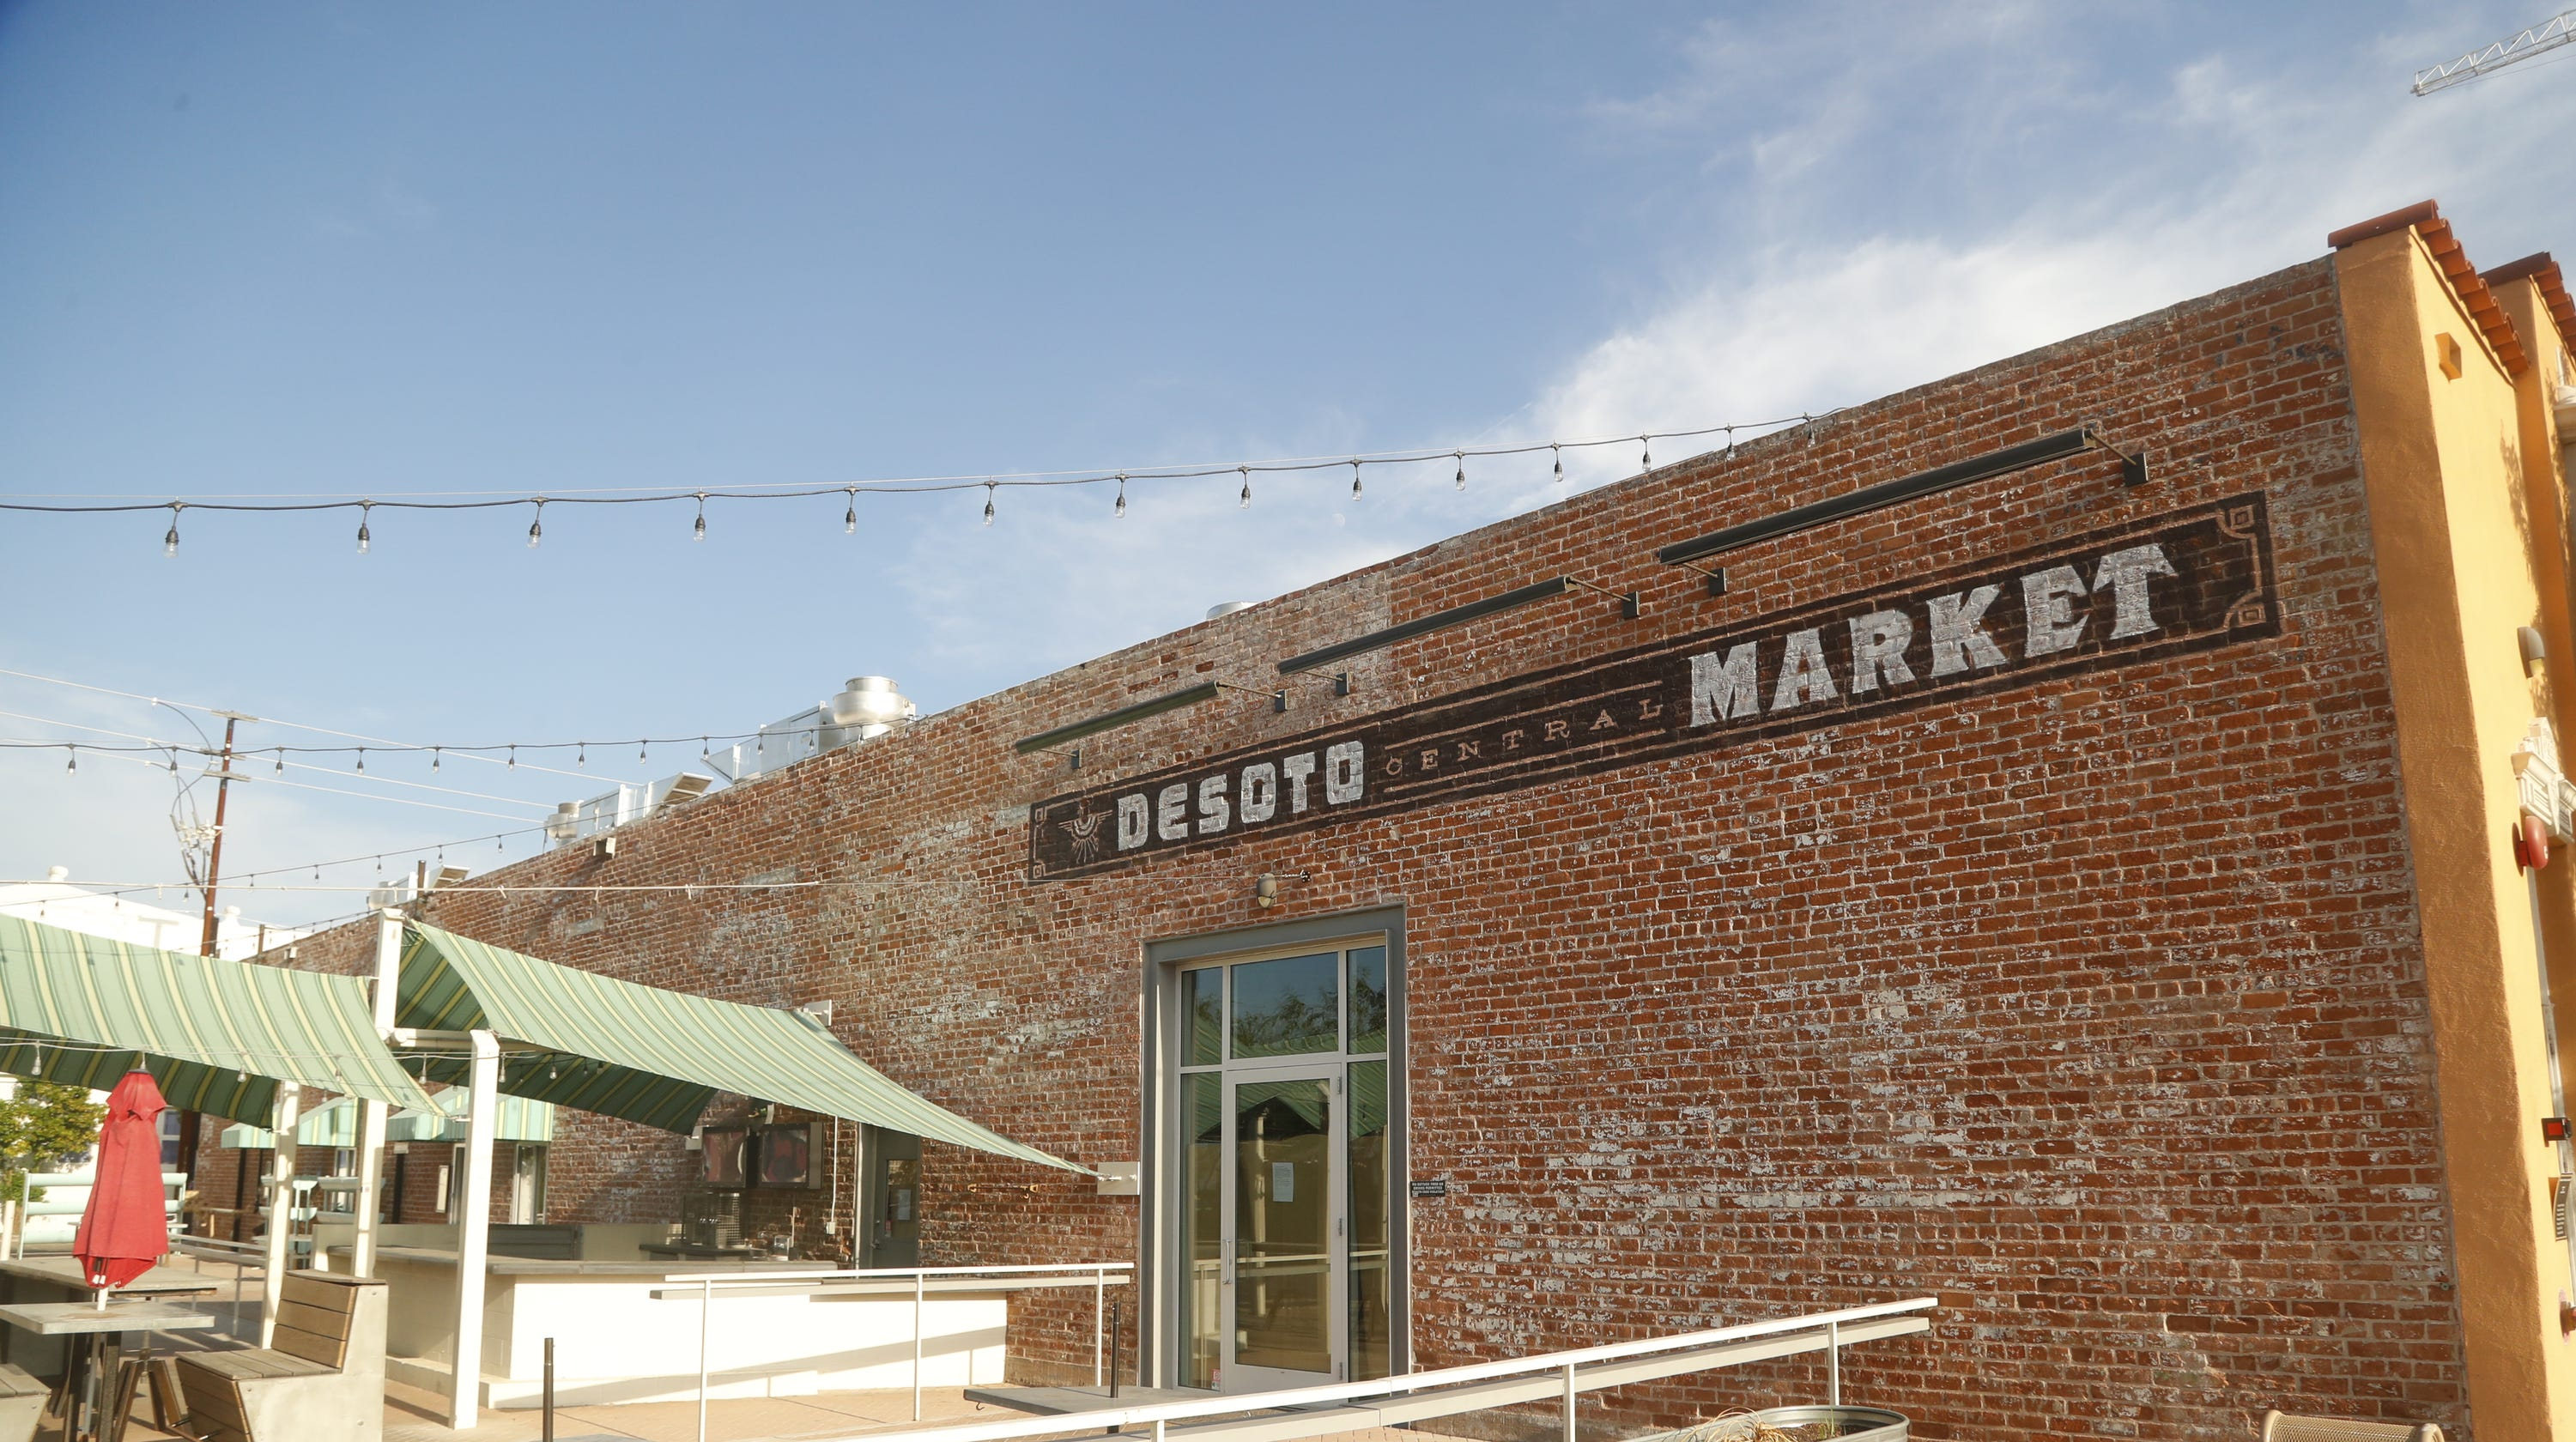 DeSoto Central Market has closed on Roosevelt Row in downtown Phoenix